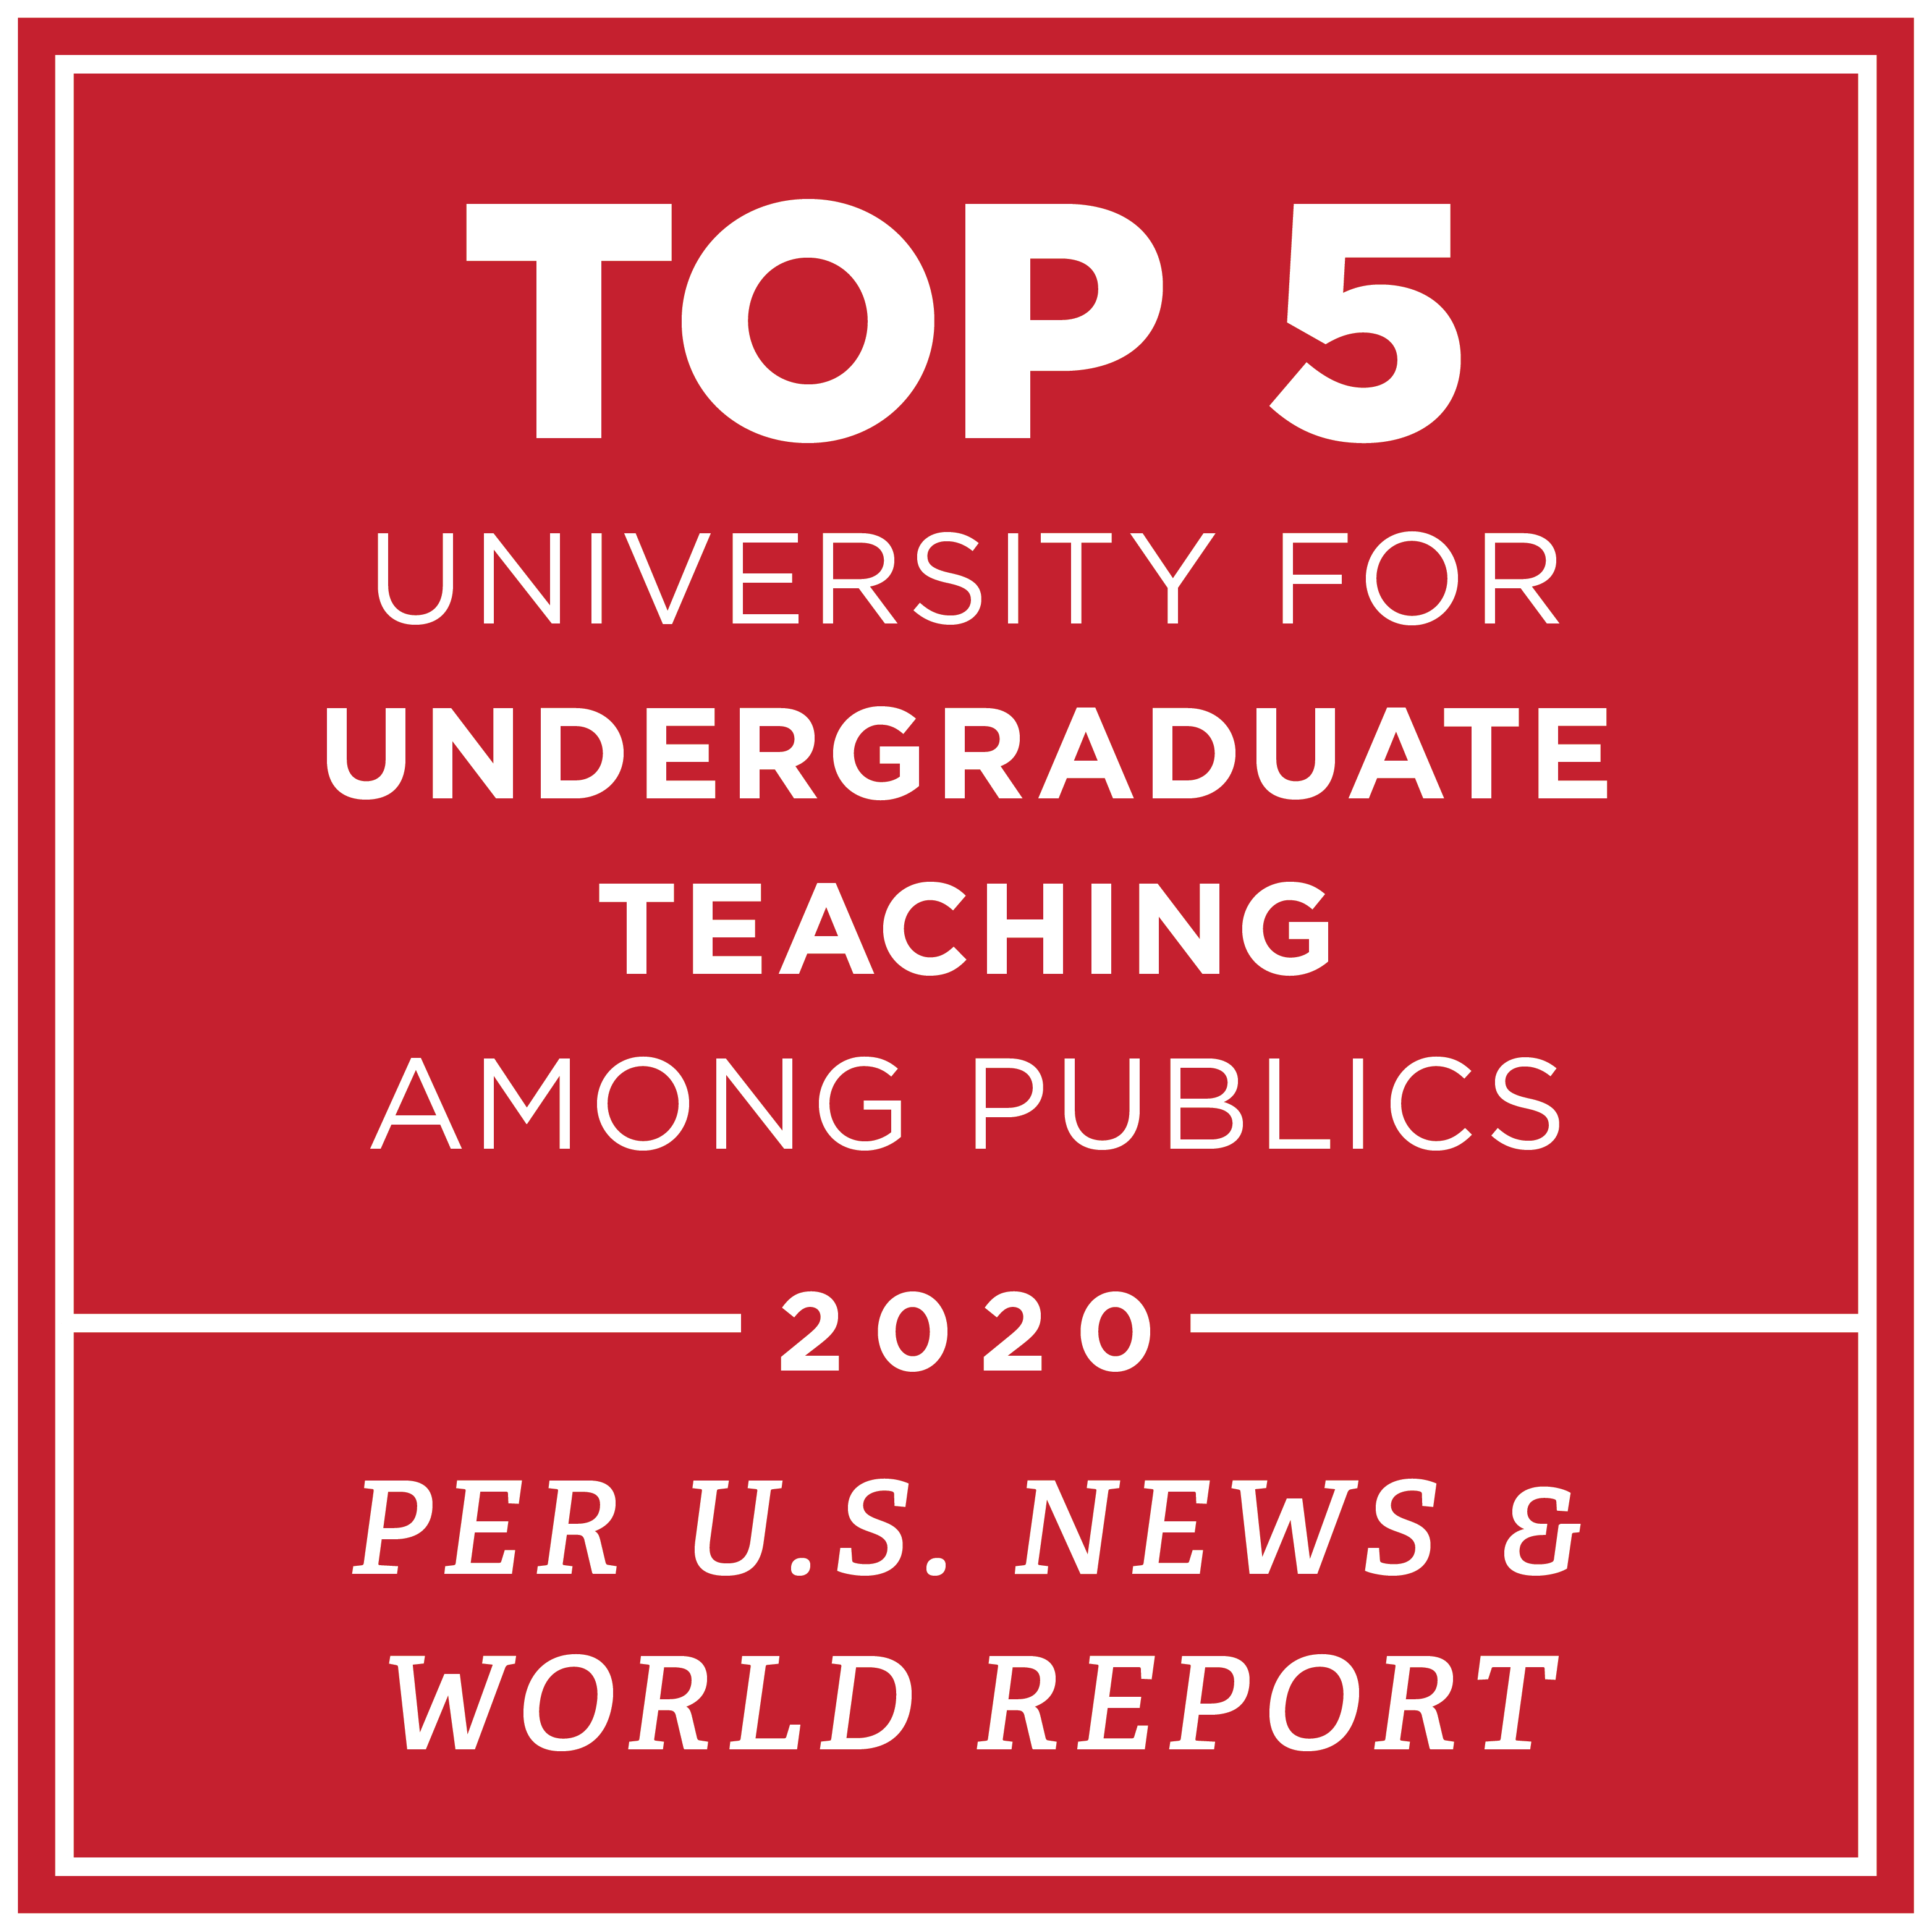 Top 5 university for undergraduate teaching among publics 2020 per U.S. News and World Report